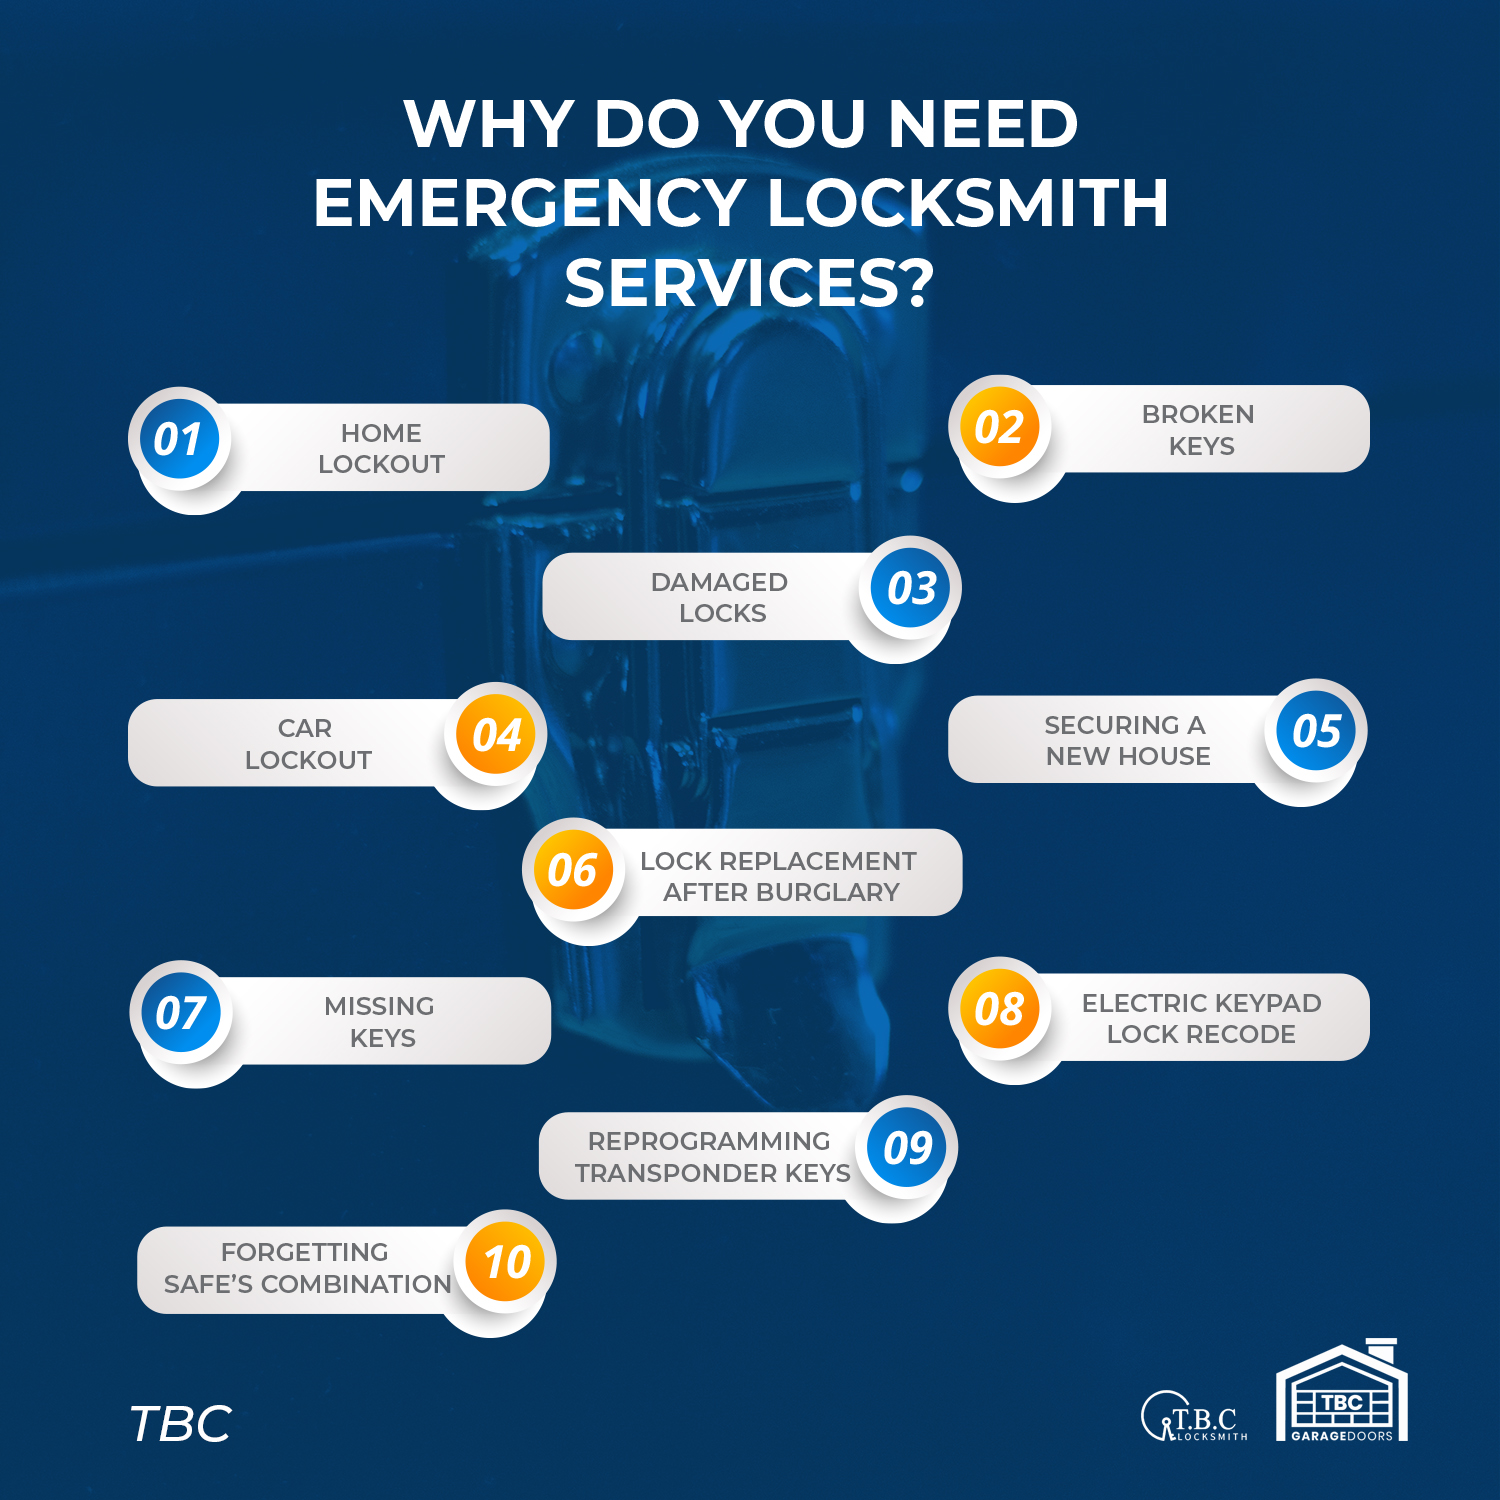 Why Do You Need Emergency Locksmith Services?